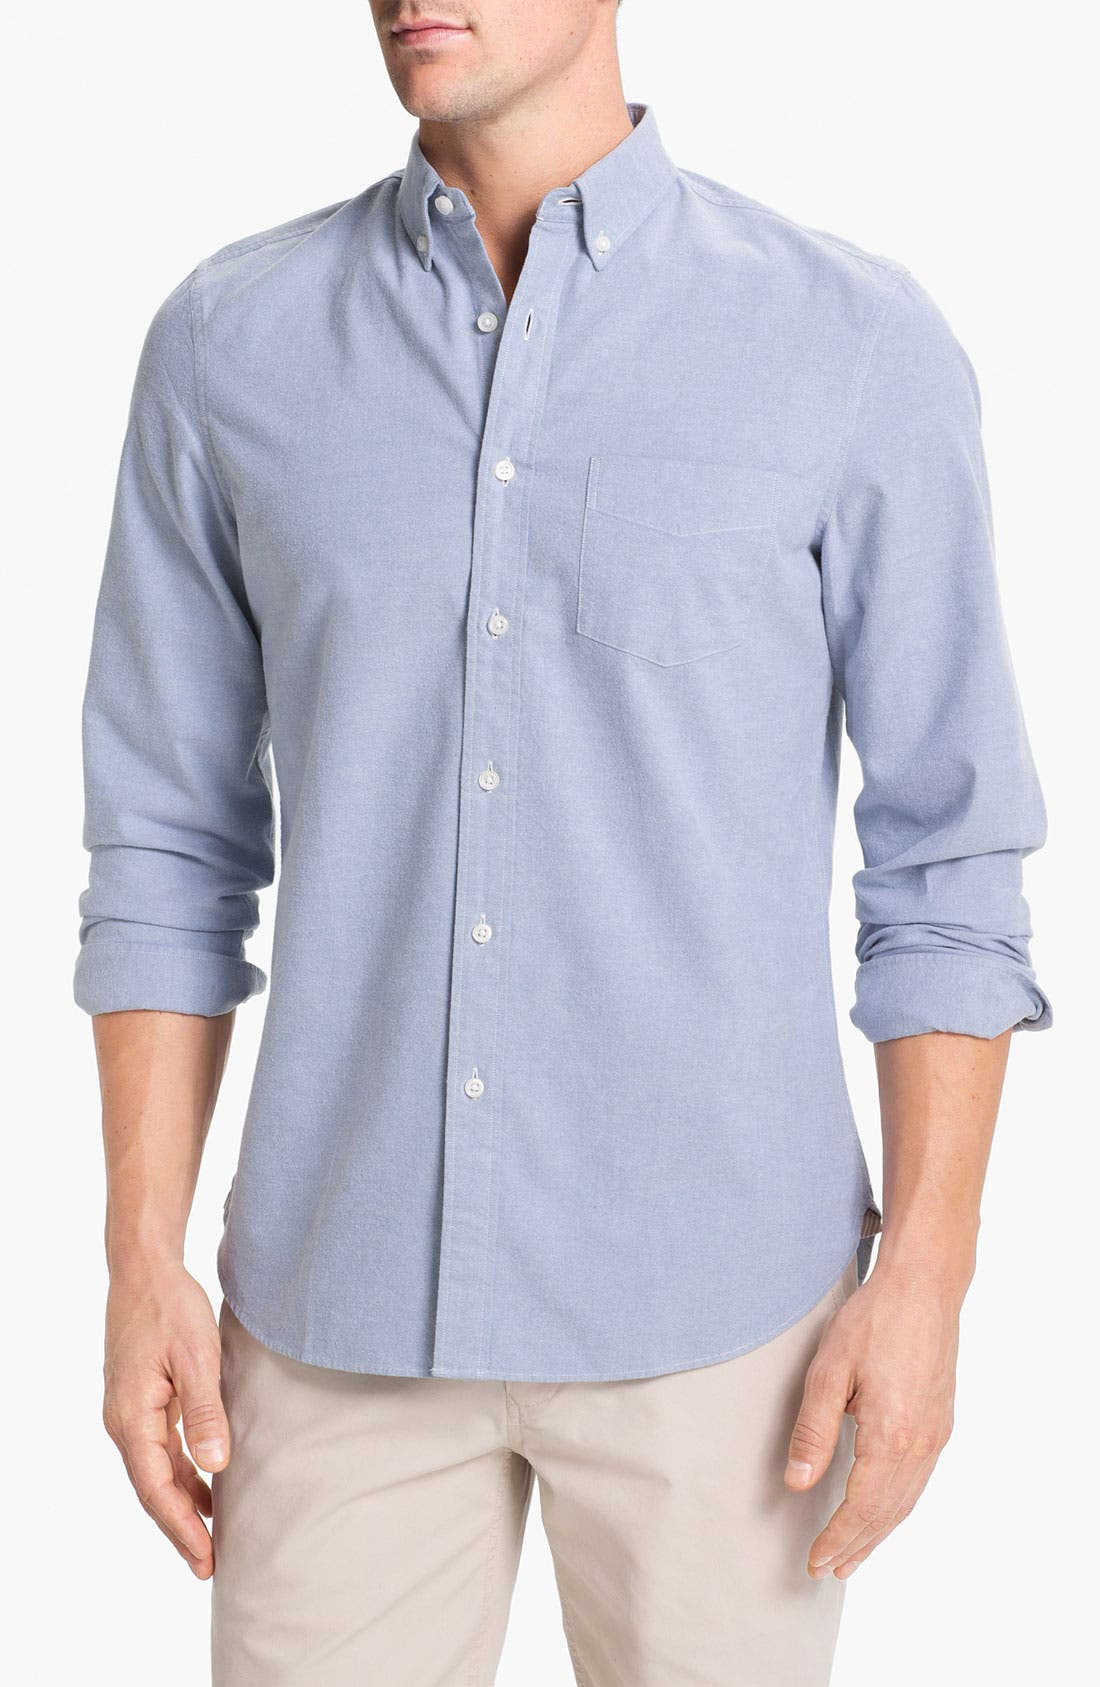 Alternate Image 1 Selected - Wallin & Bros. Trim Fit Oxford Sport Shirt